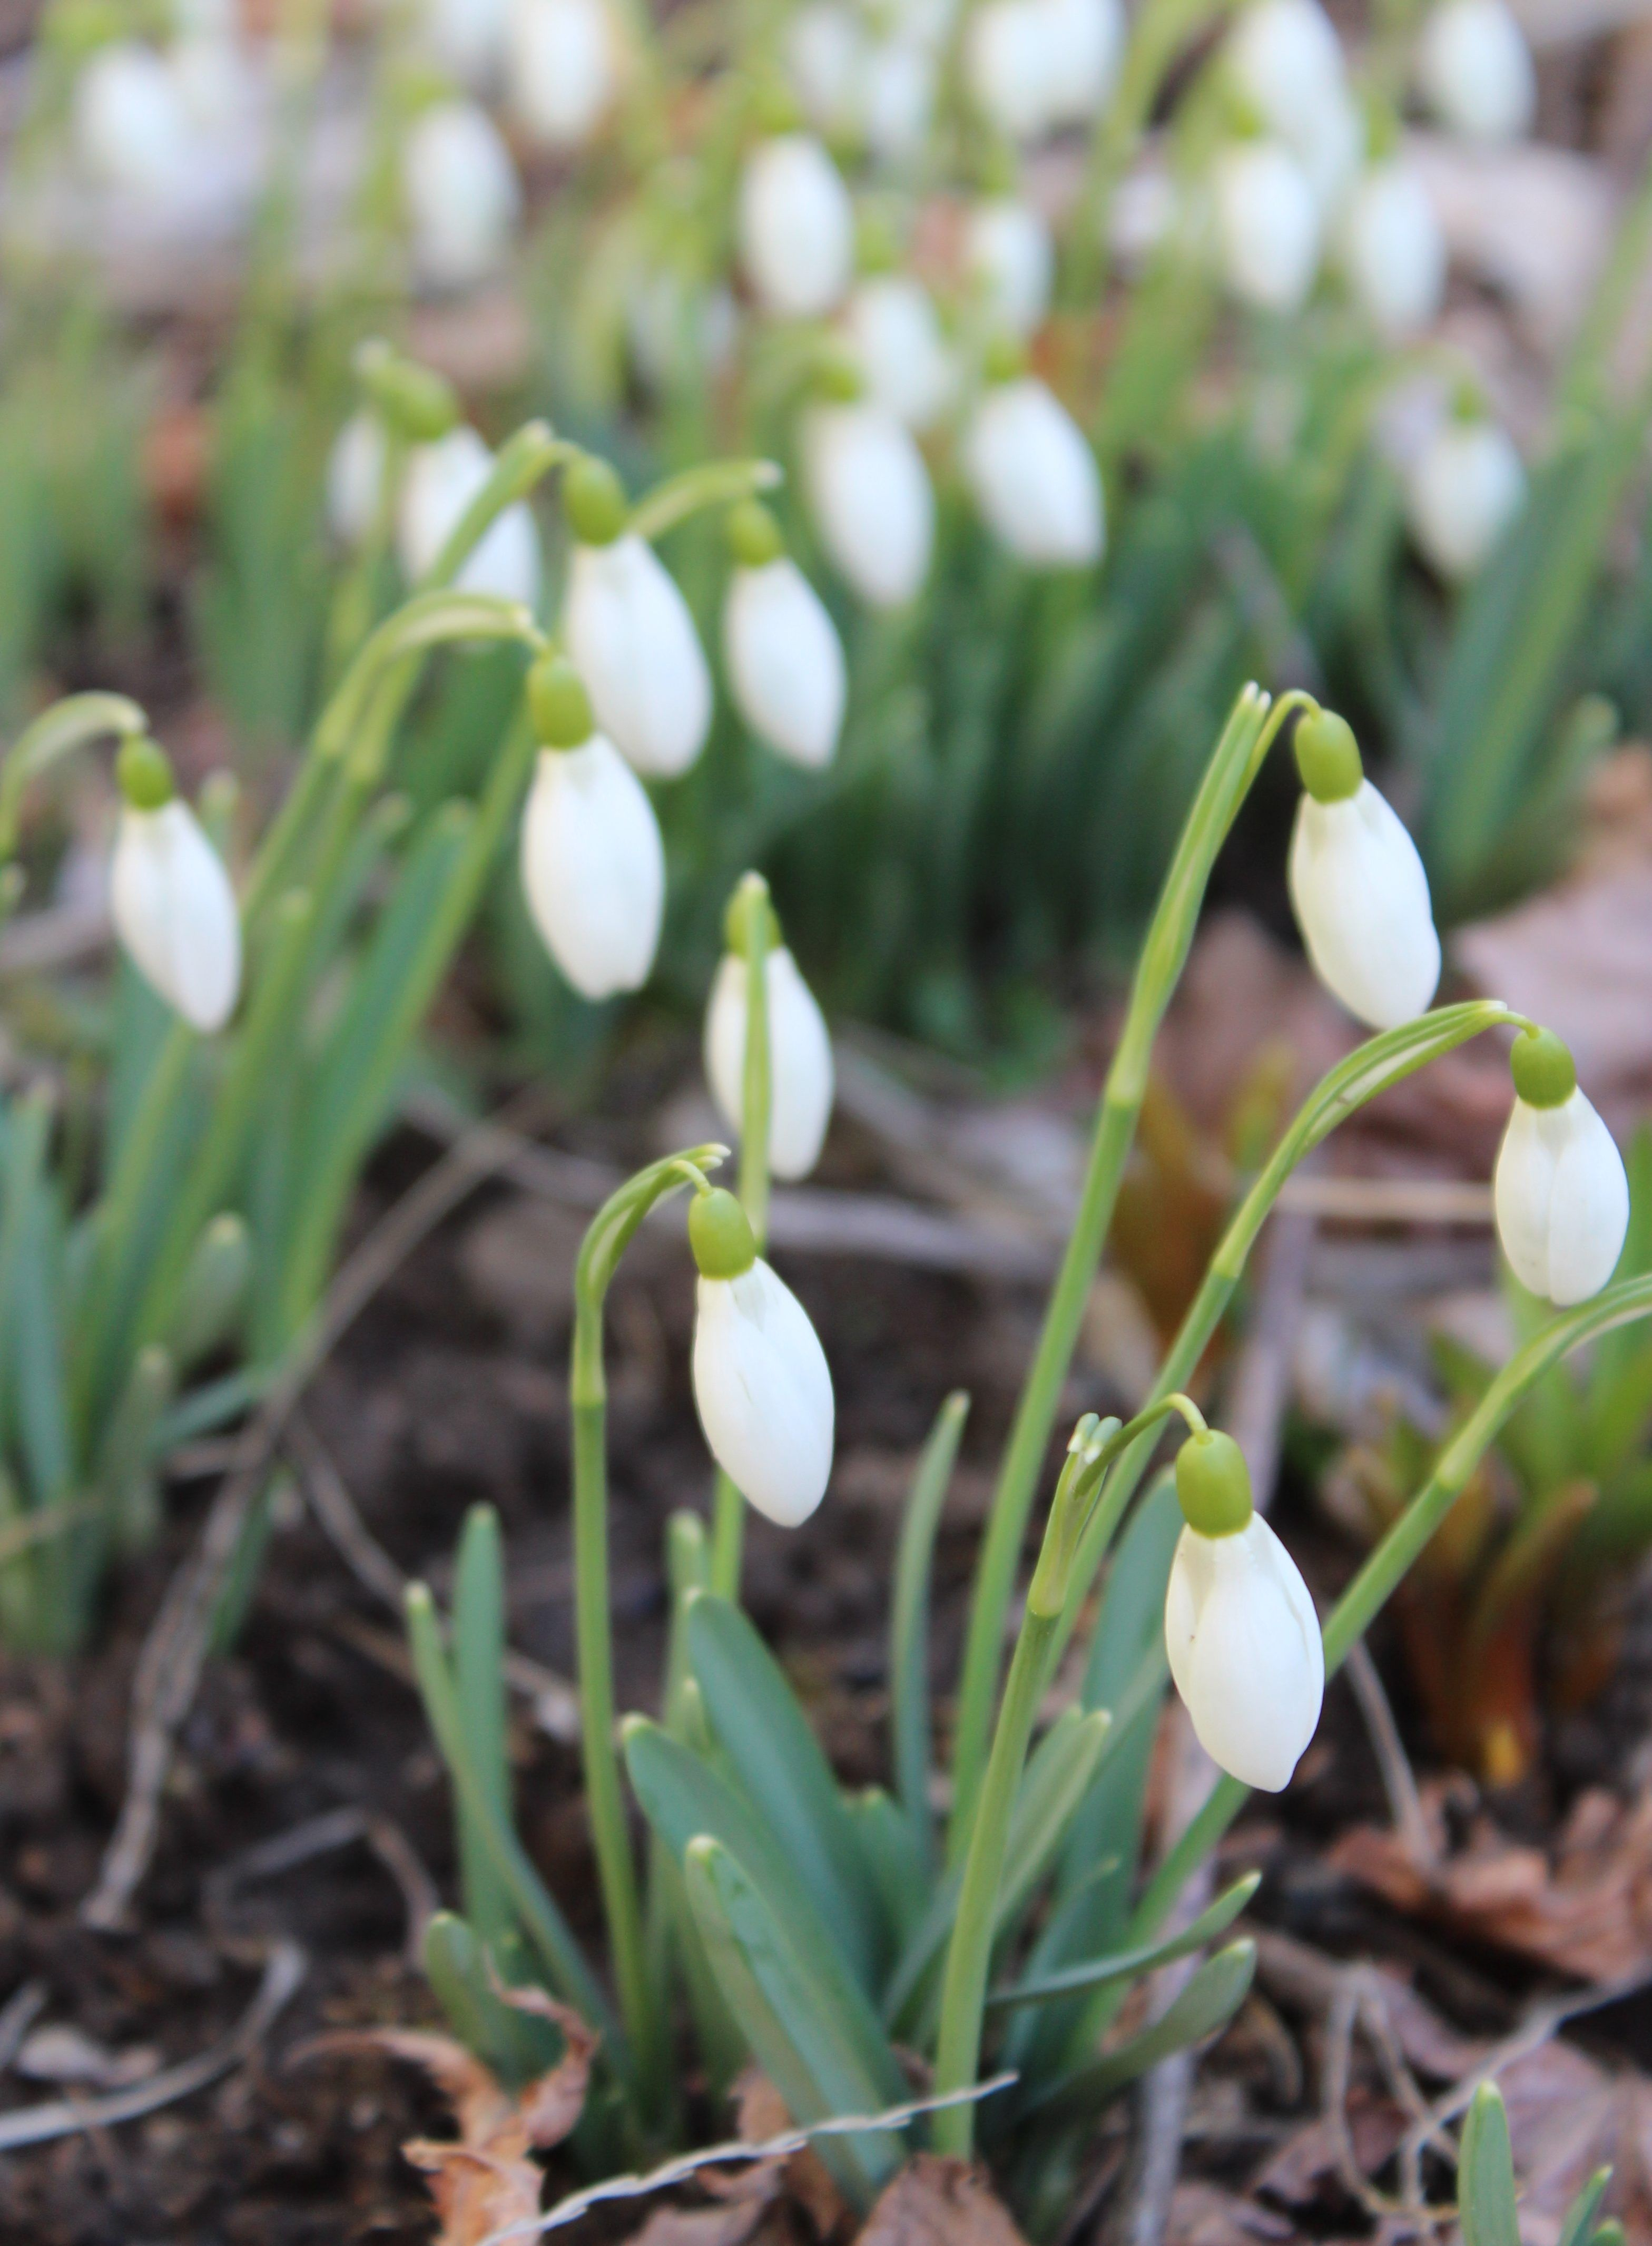 Snow Drop Flowers Galanthus Symbolism And Name Origins Snow Drop Flowers Galanthus Are A Late Winter Early Snow Drops Flowers Early Spring Flowers Flowers